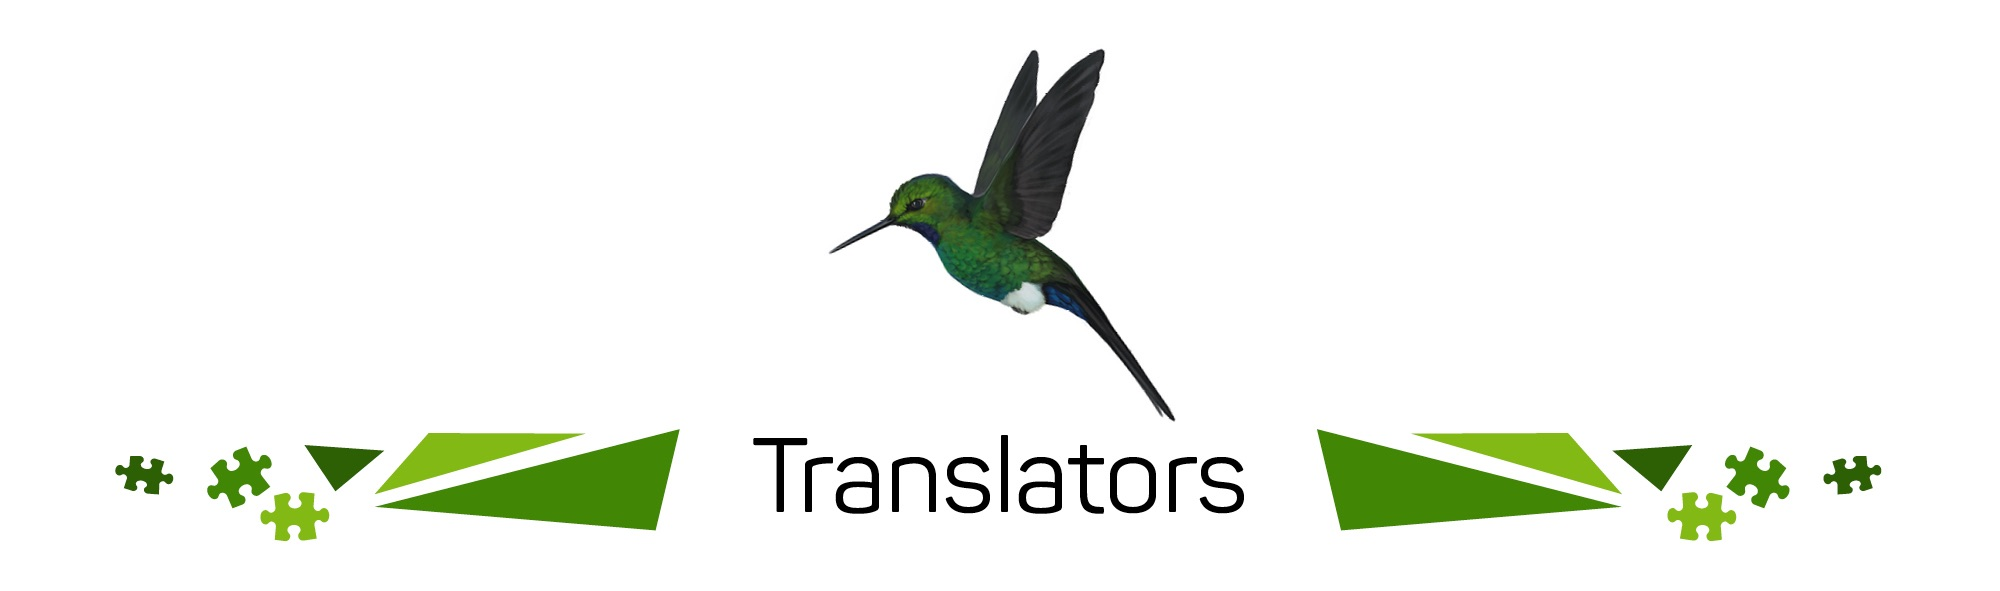 https://api.treecer.com/storage/400/translator_TWC.jpg